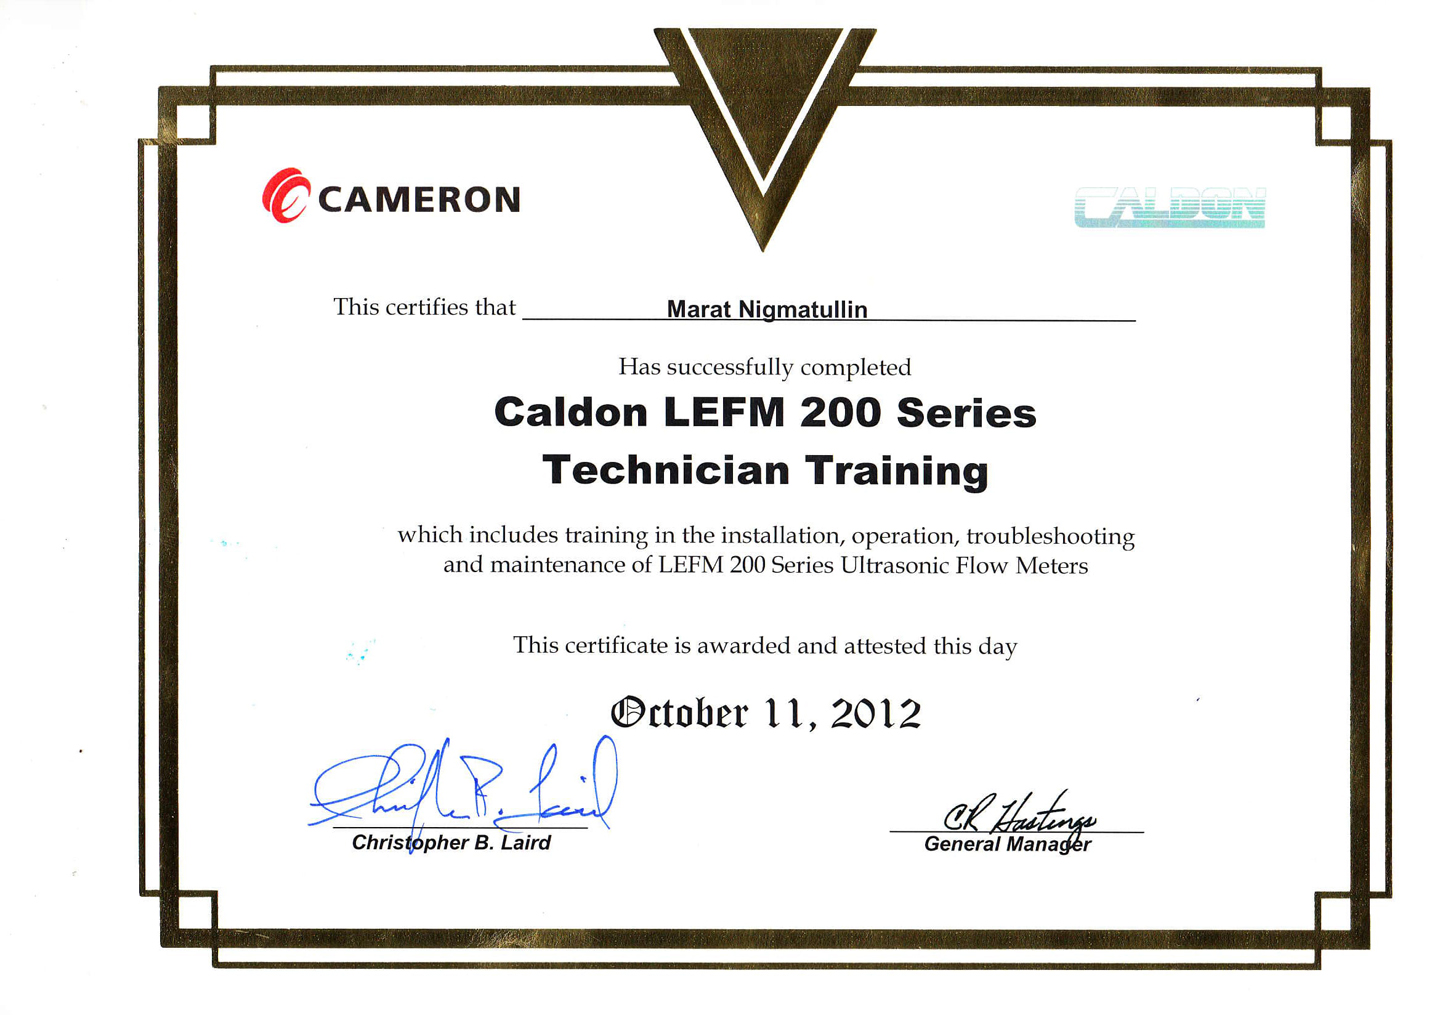 Cameron Technical Training Certificate. Installation, operation, troubleshooting and maintenance of ultrasonic flow meters LEFM 200